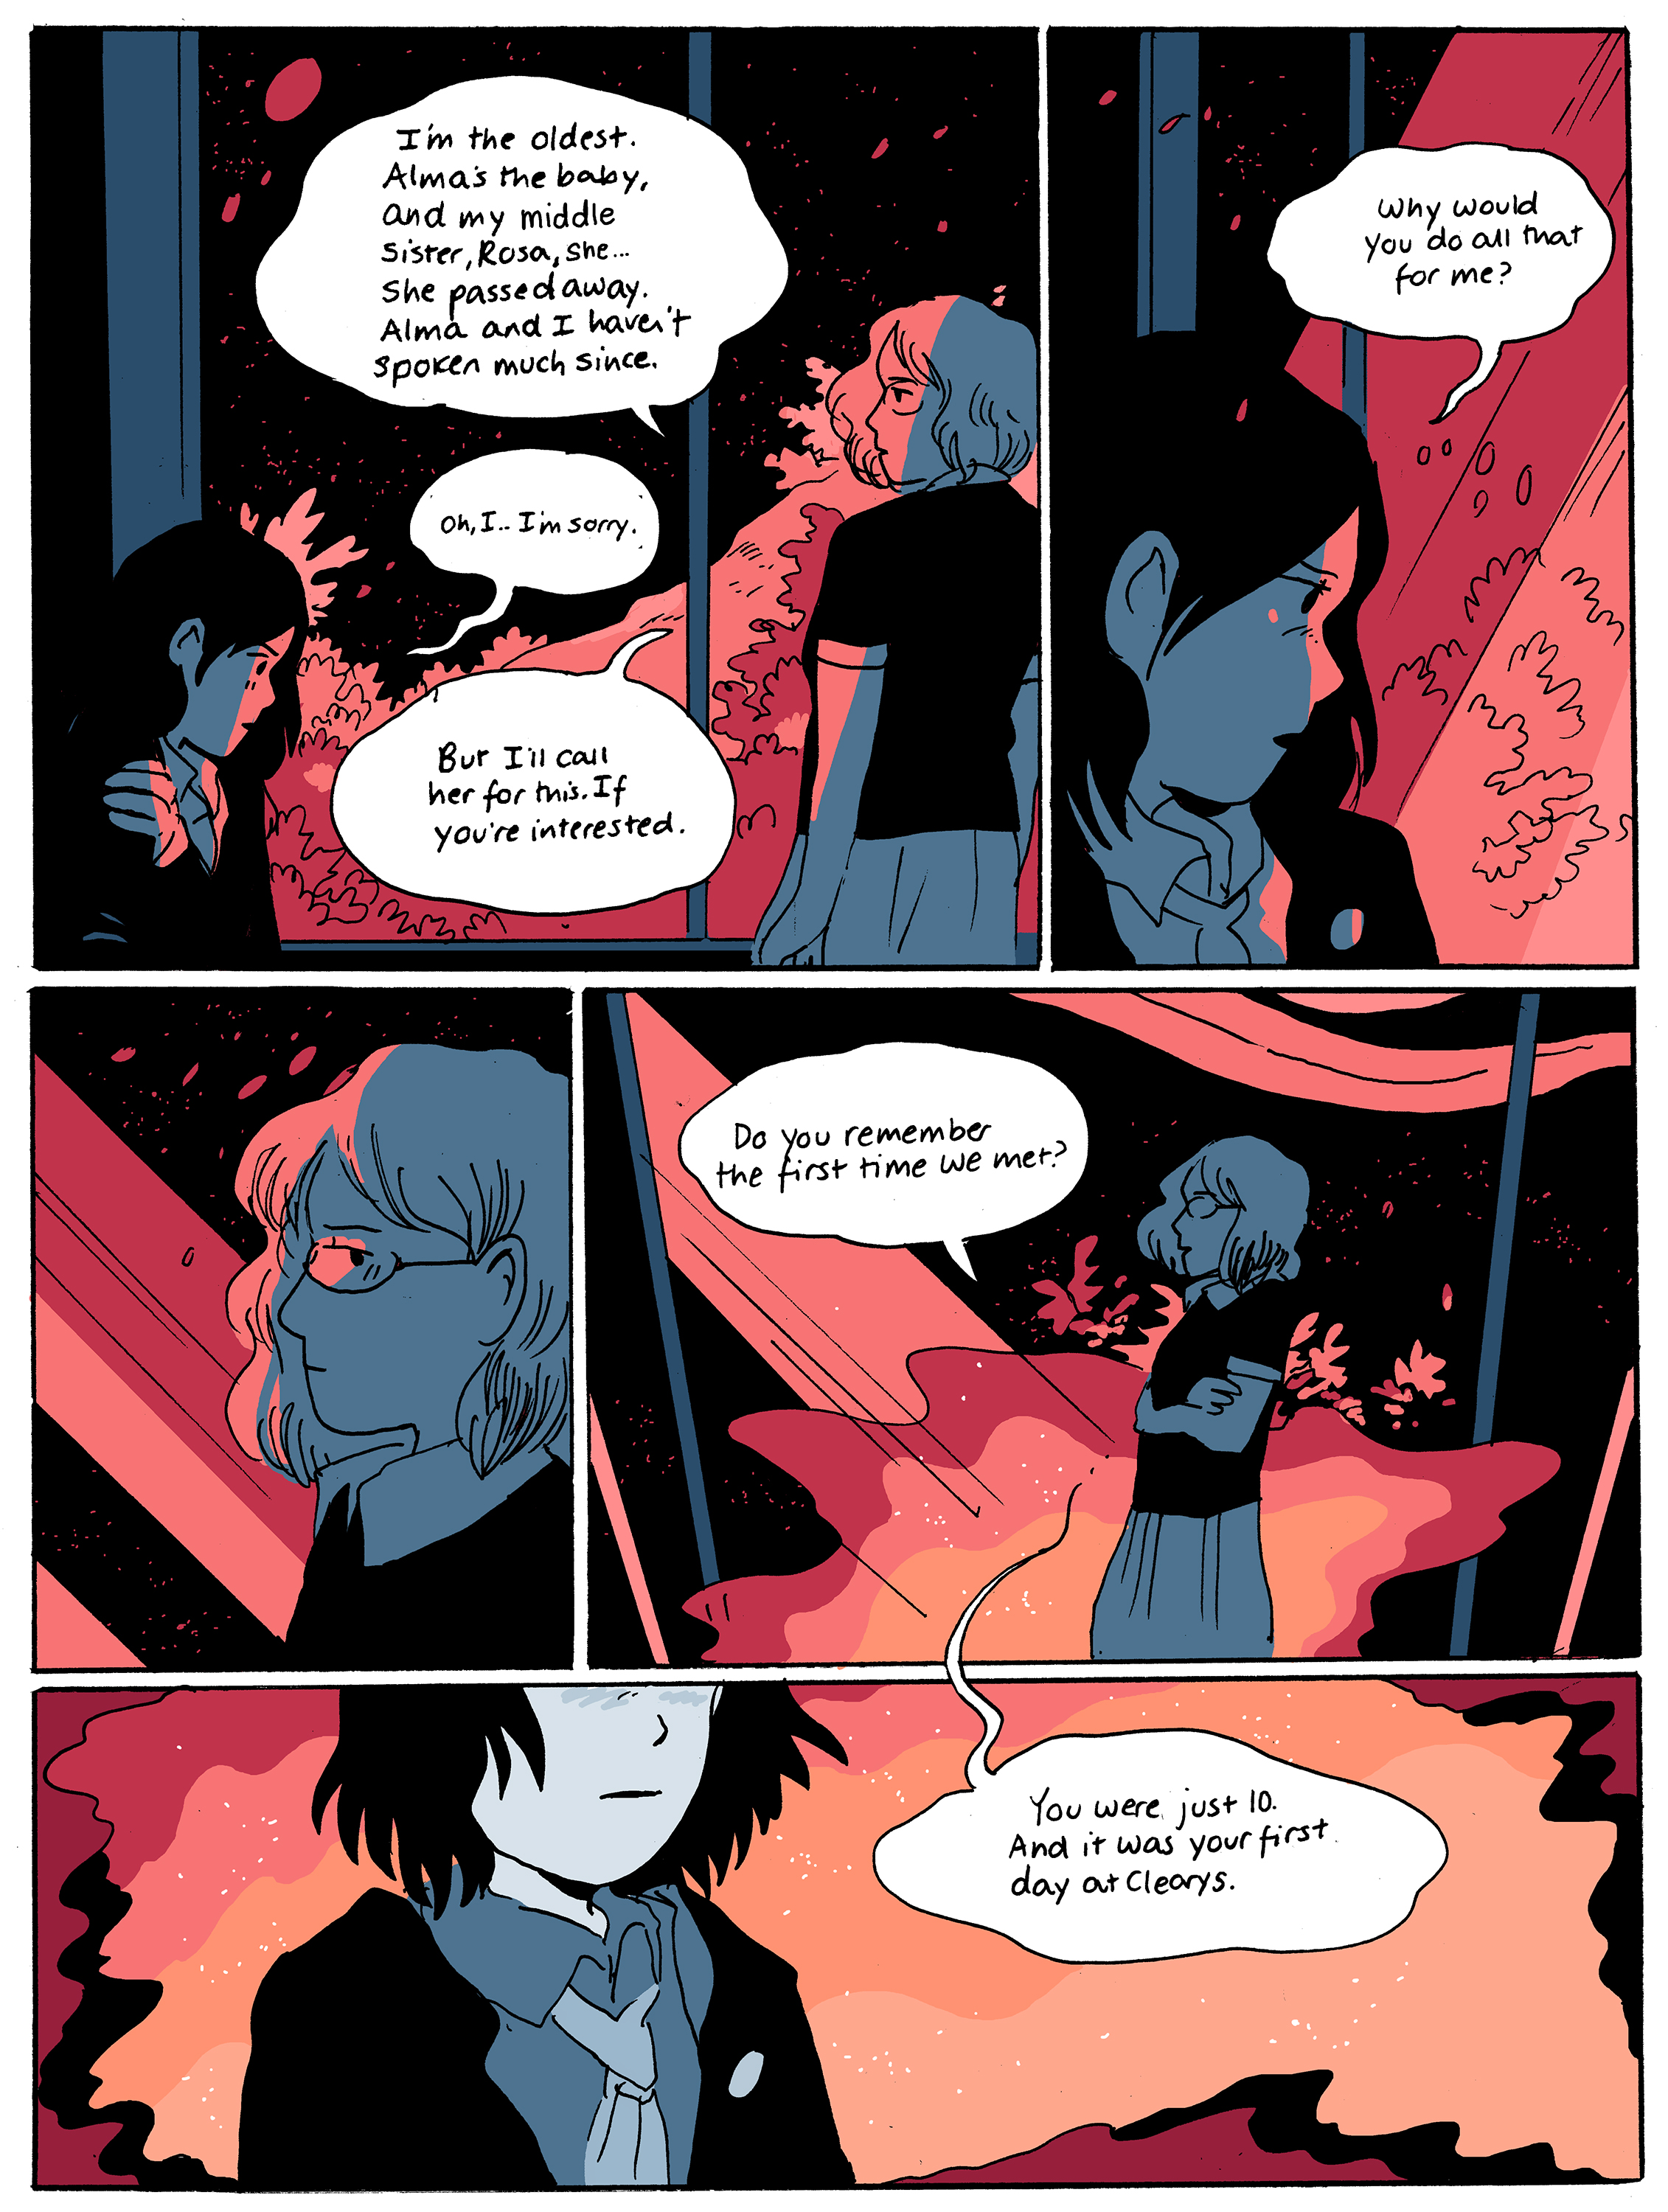 chapter13_page23.jpg